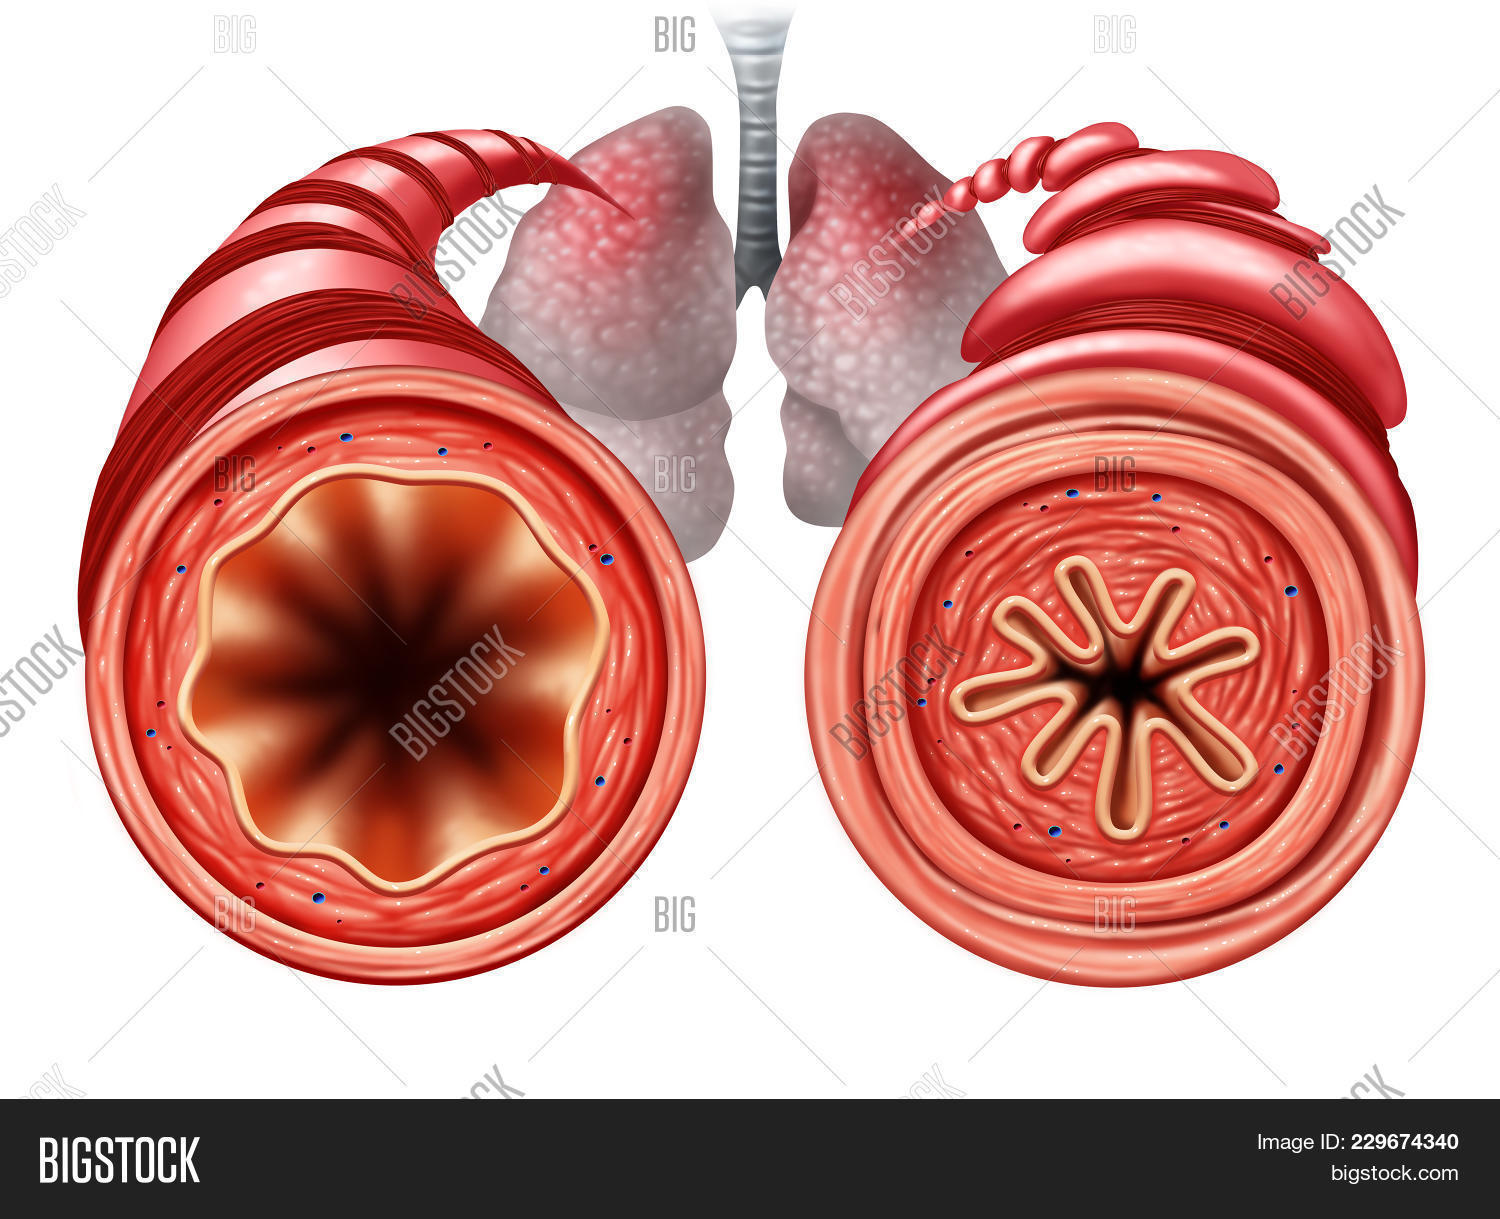 Asthma Diagram Healthy Image & Photo (Free Trial) | Bigstock